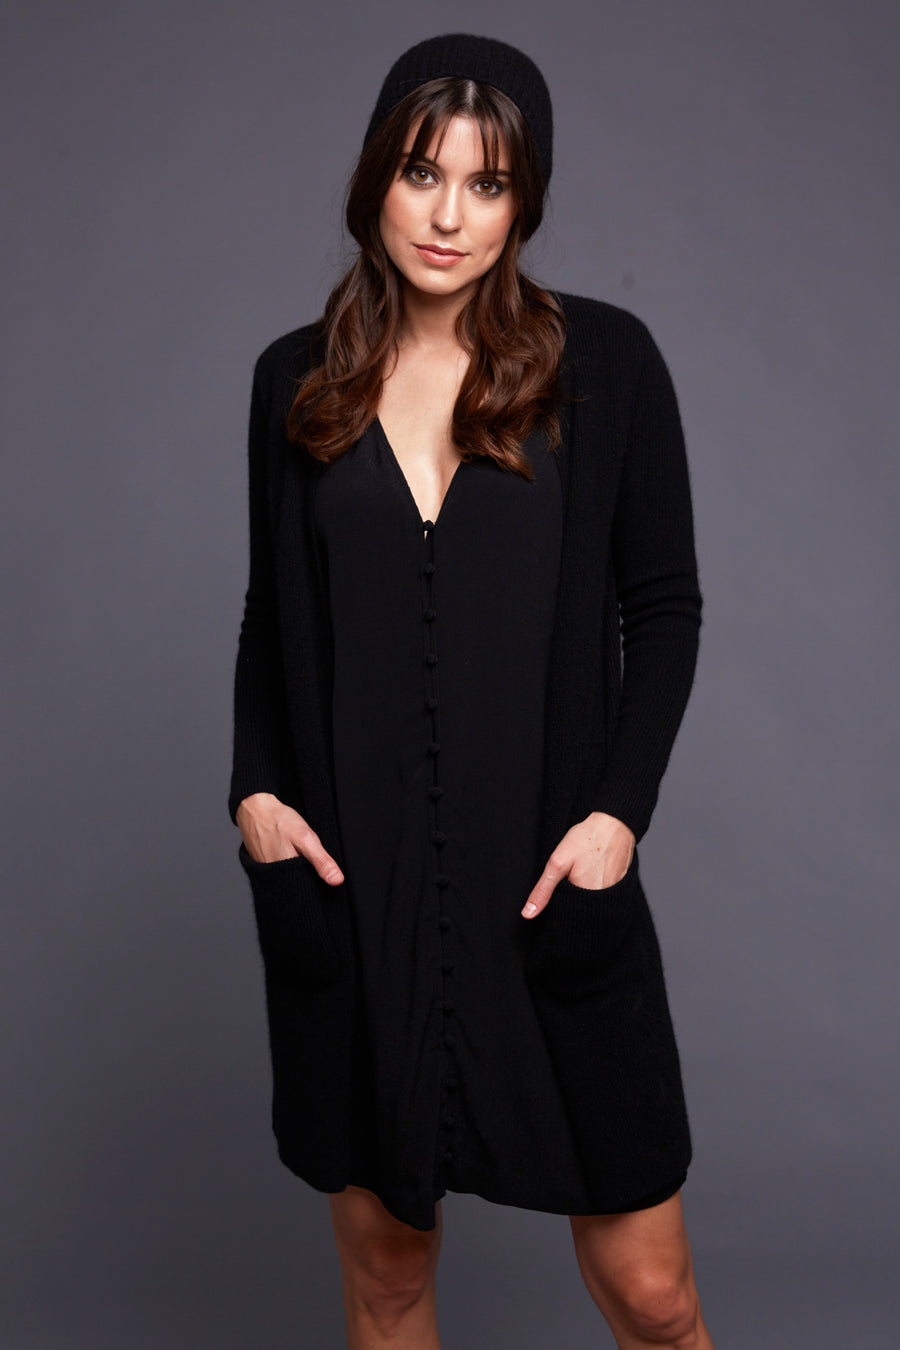 pine cashmere morgan women's 100% pure cashmere cardigan sweater in black